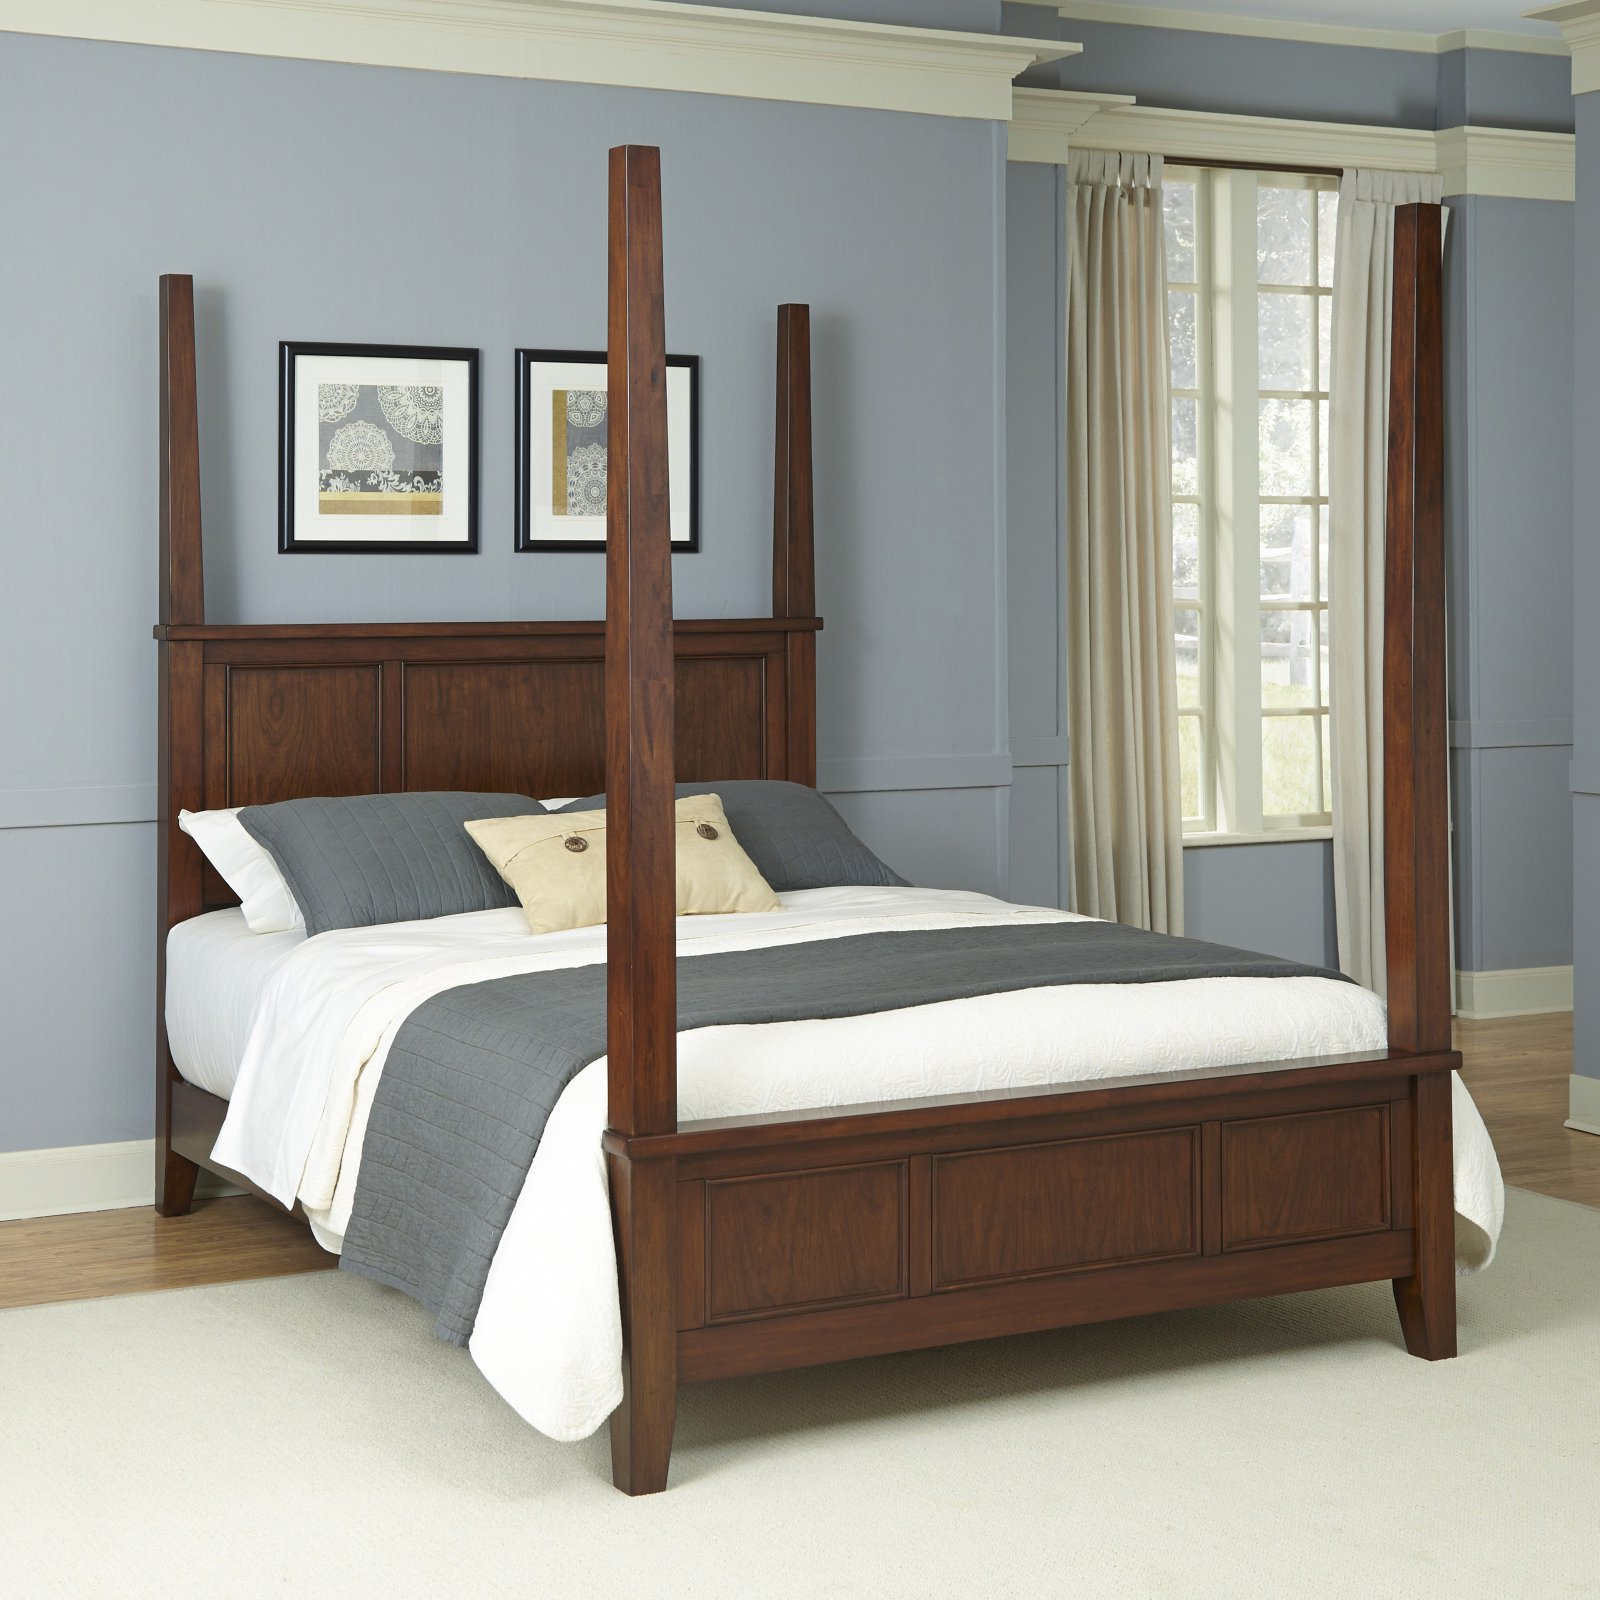 Home Styles Chesapeake King Poster Bed by Home Styles